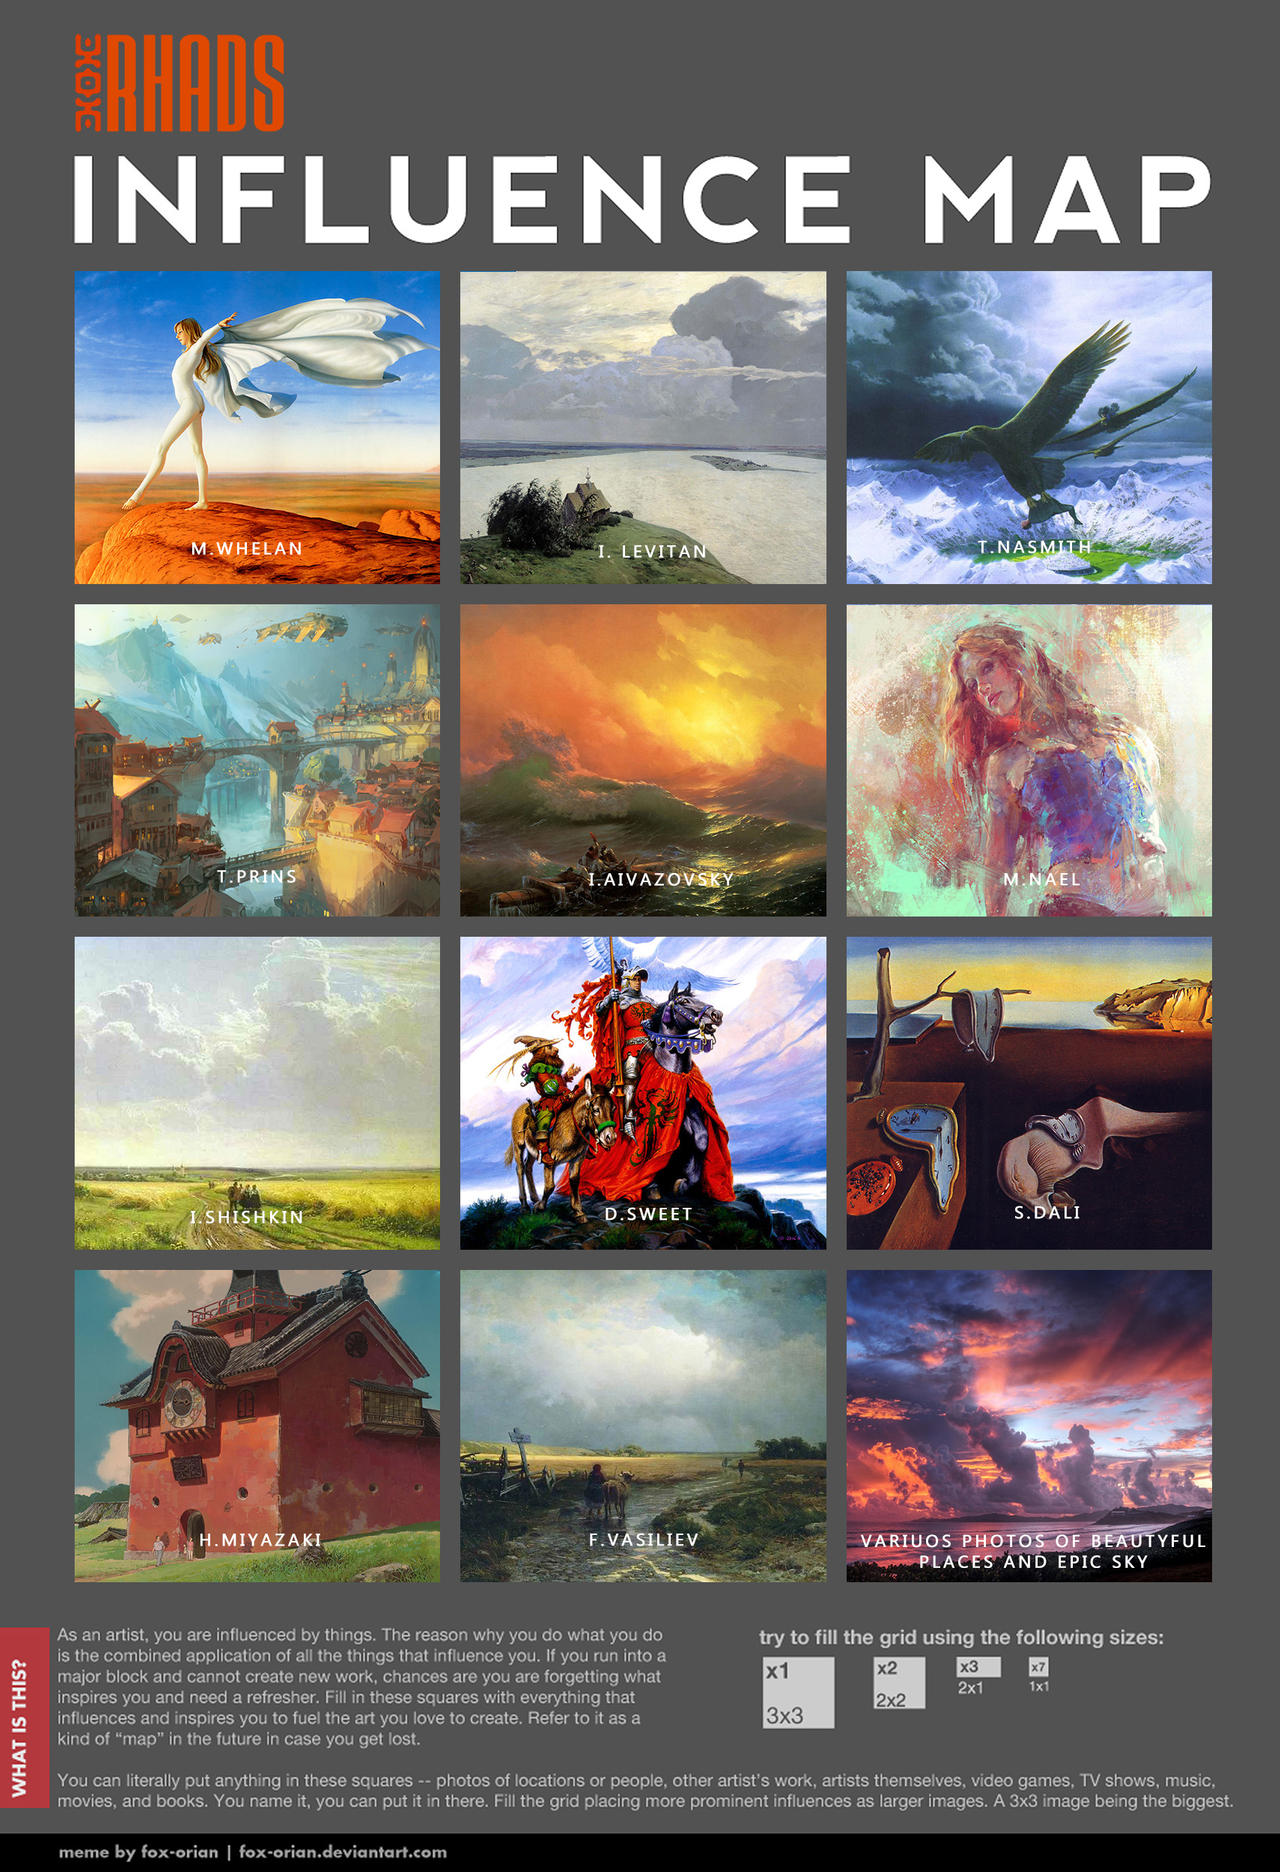 RHADS's Influence map by RHADS